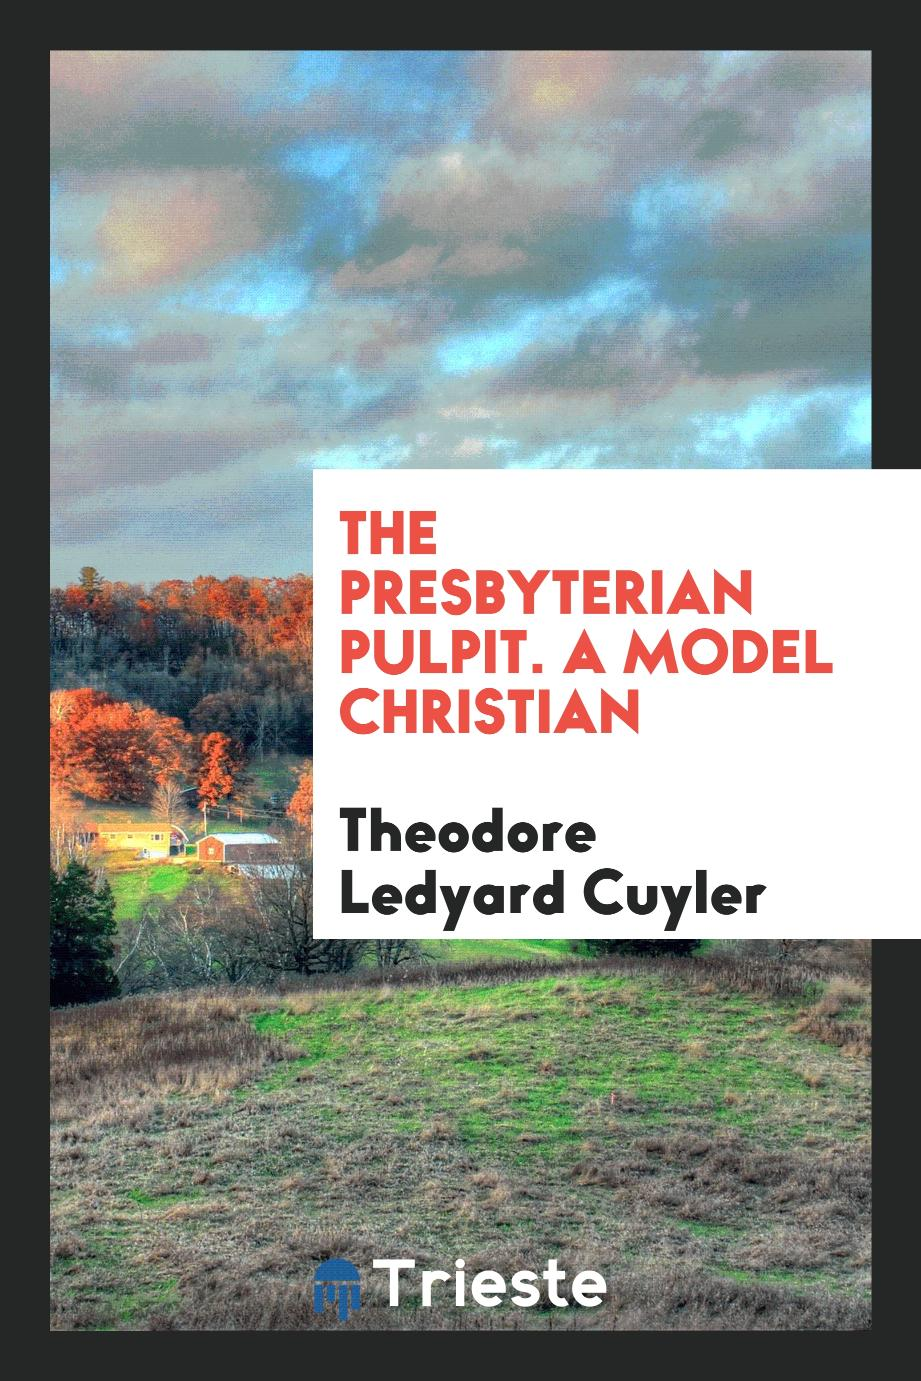 The presbyterian pulpit. A model Christian